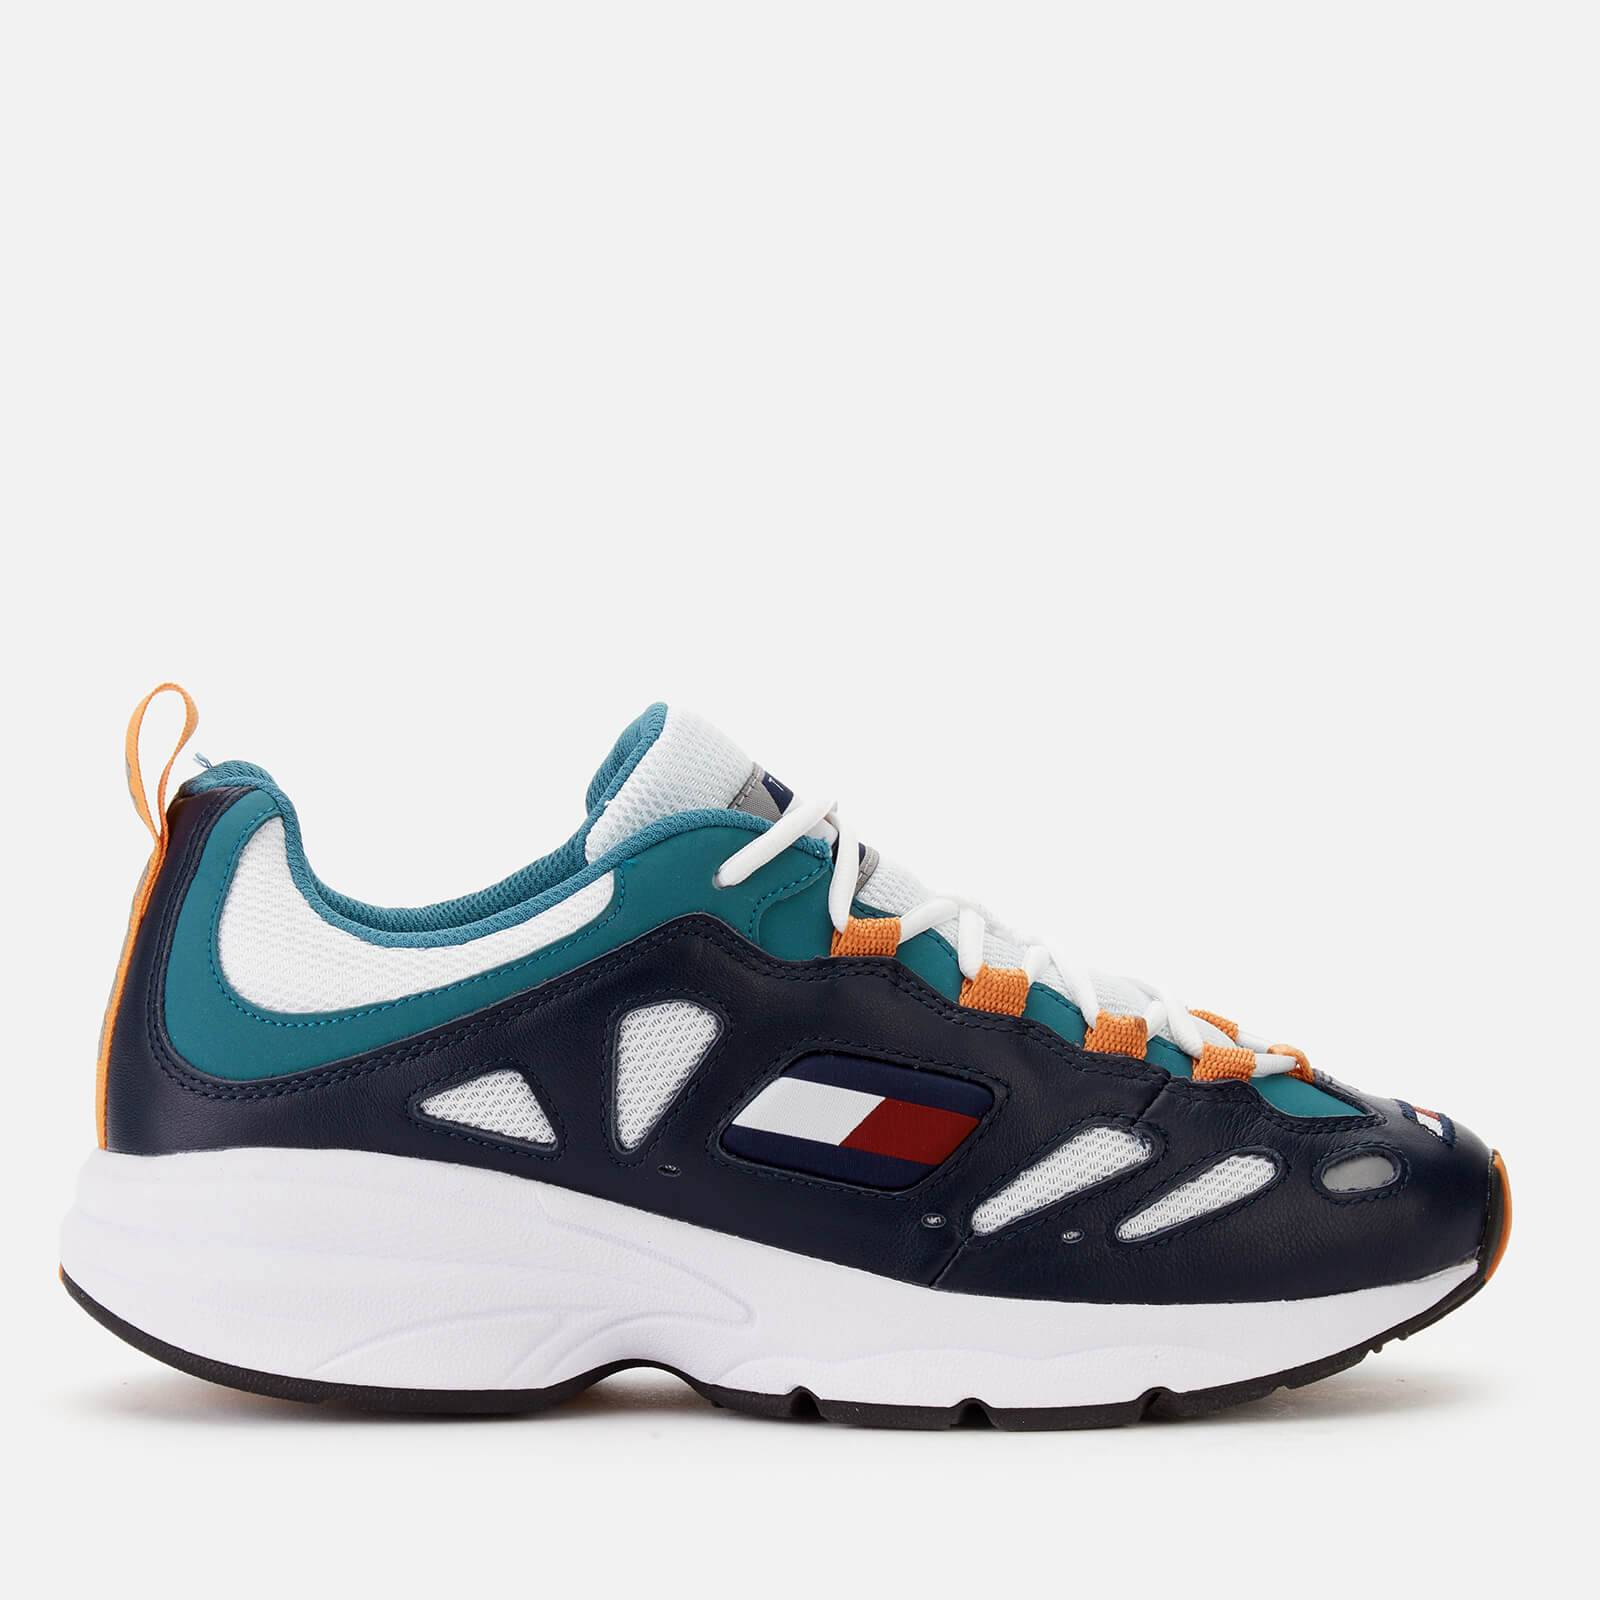 Tommy Jeans Men's Retro Chunky Runner Style Trainers - Blue/Russet/Orange - EU 44/UK 10 - Blue